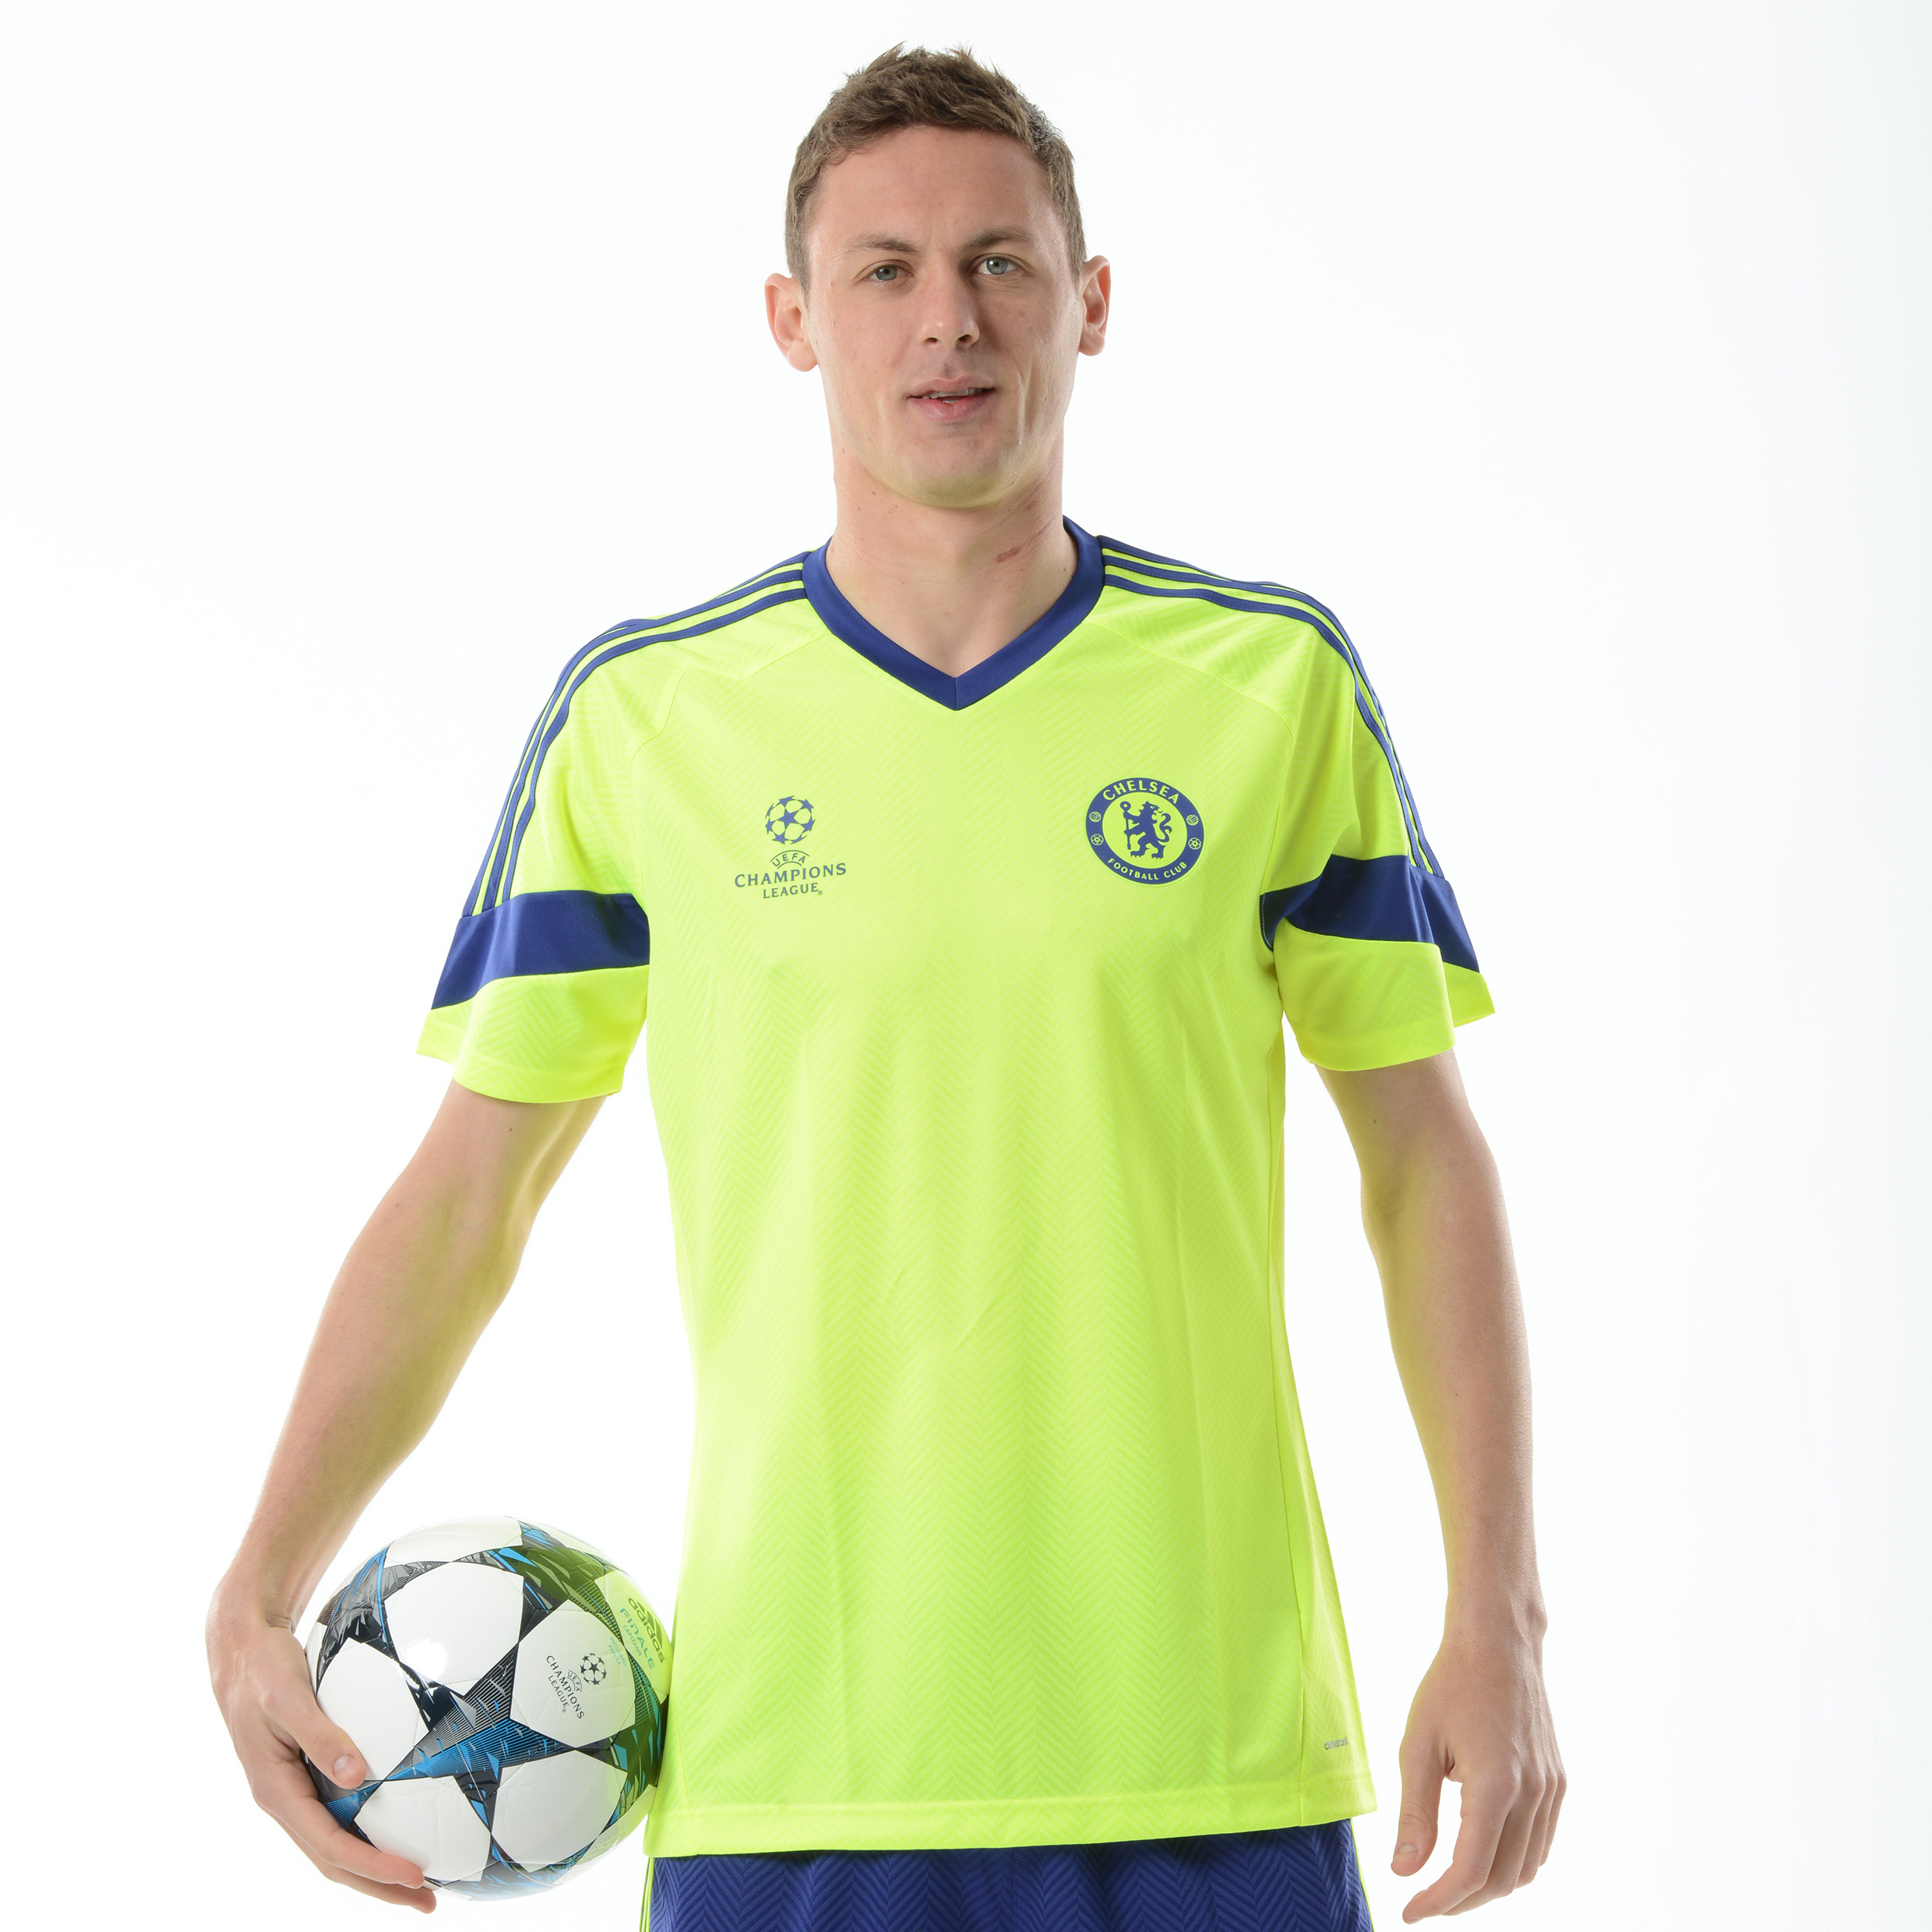 Chelsea UCL Training Jersey   Fans can support their favourite team with style and pride with this yellow Chelsea UCL training t-shirt which features a team badge on the left of the chest for pride. With stripes down each arm, this UCL training t-shirt offers an athletic loo